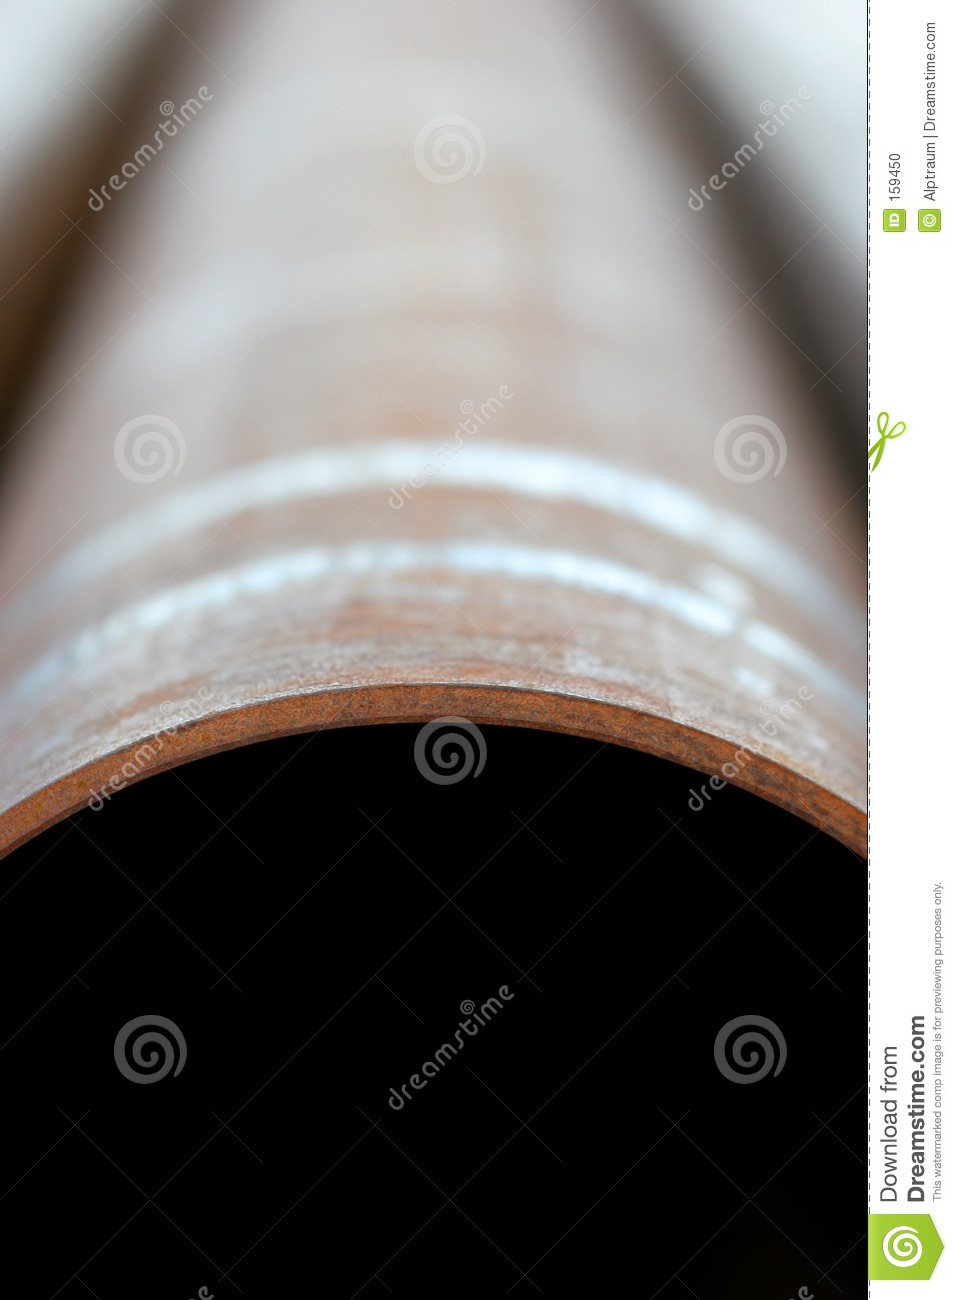 Vertical steel pipe abstract